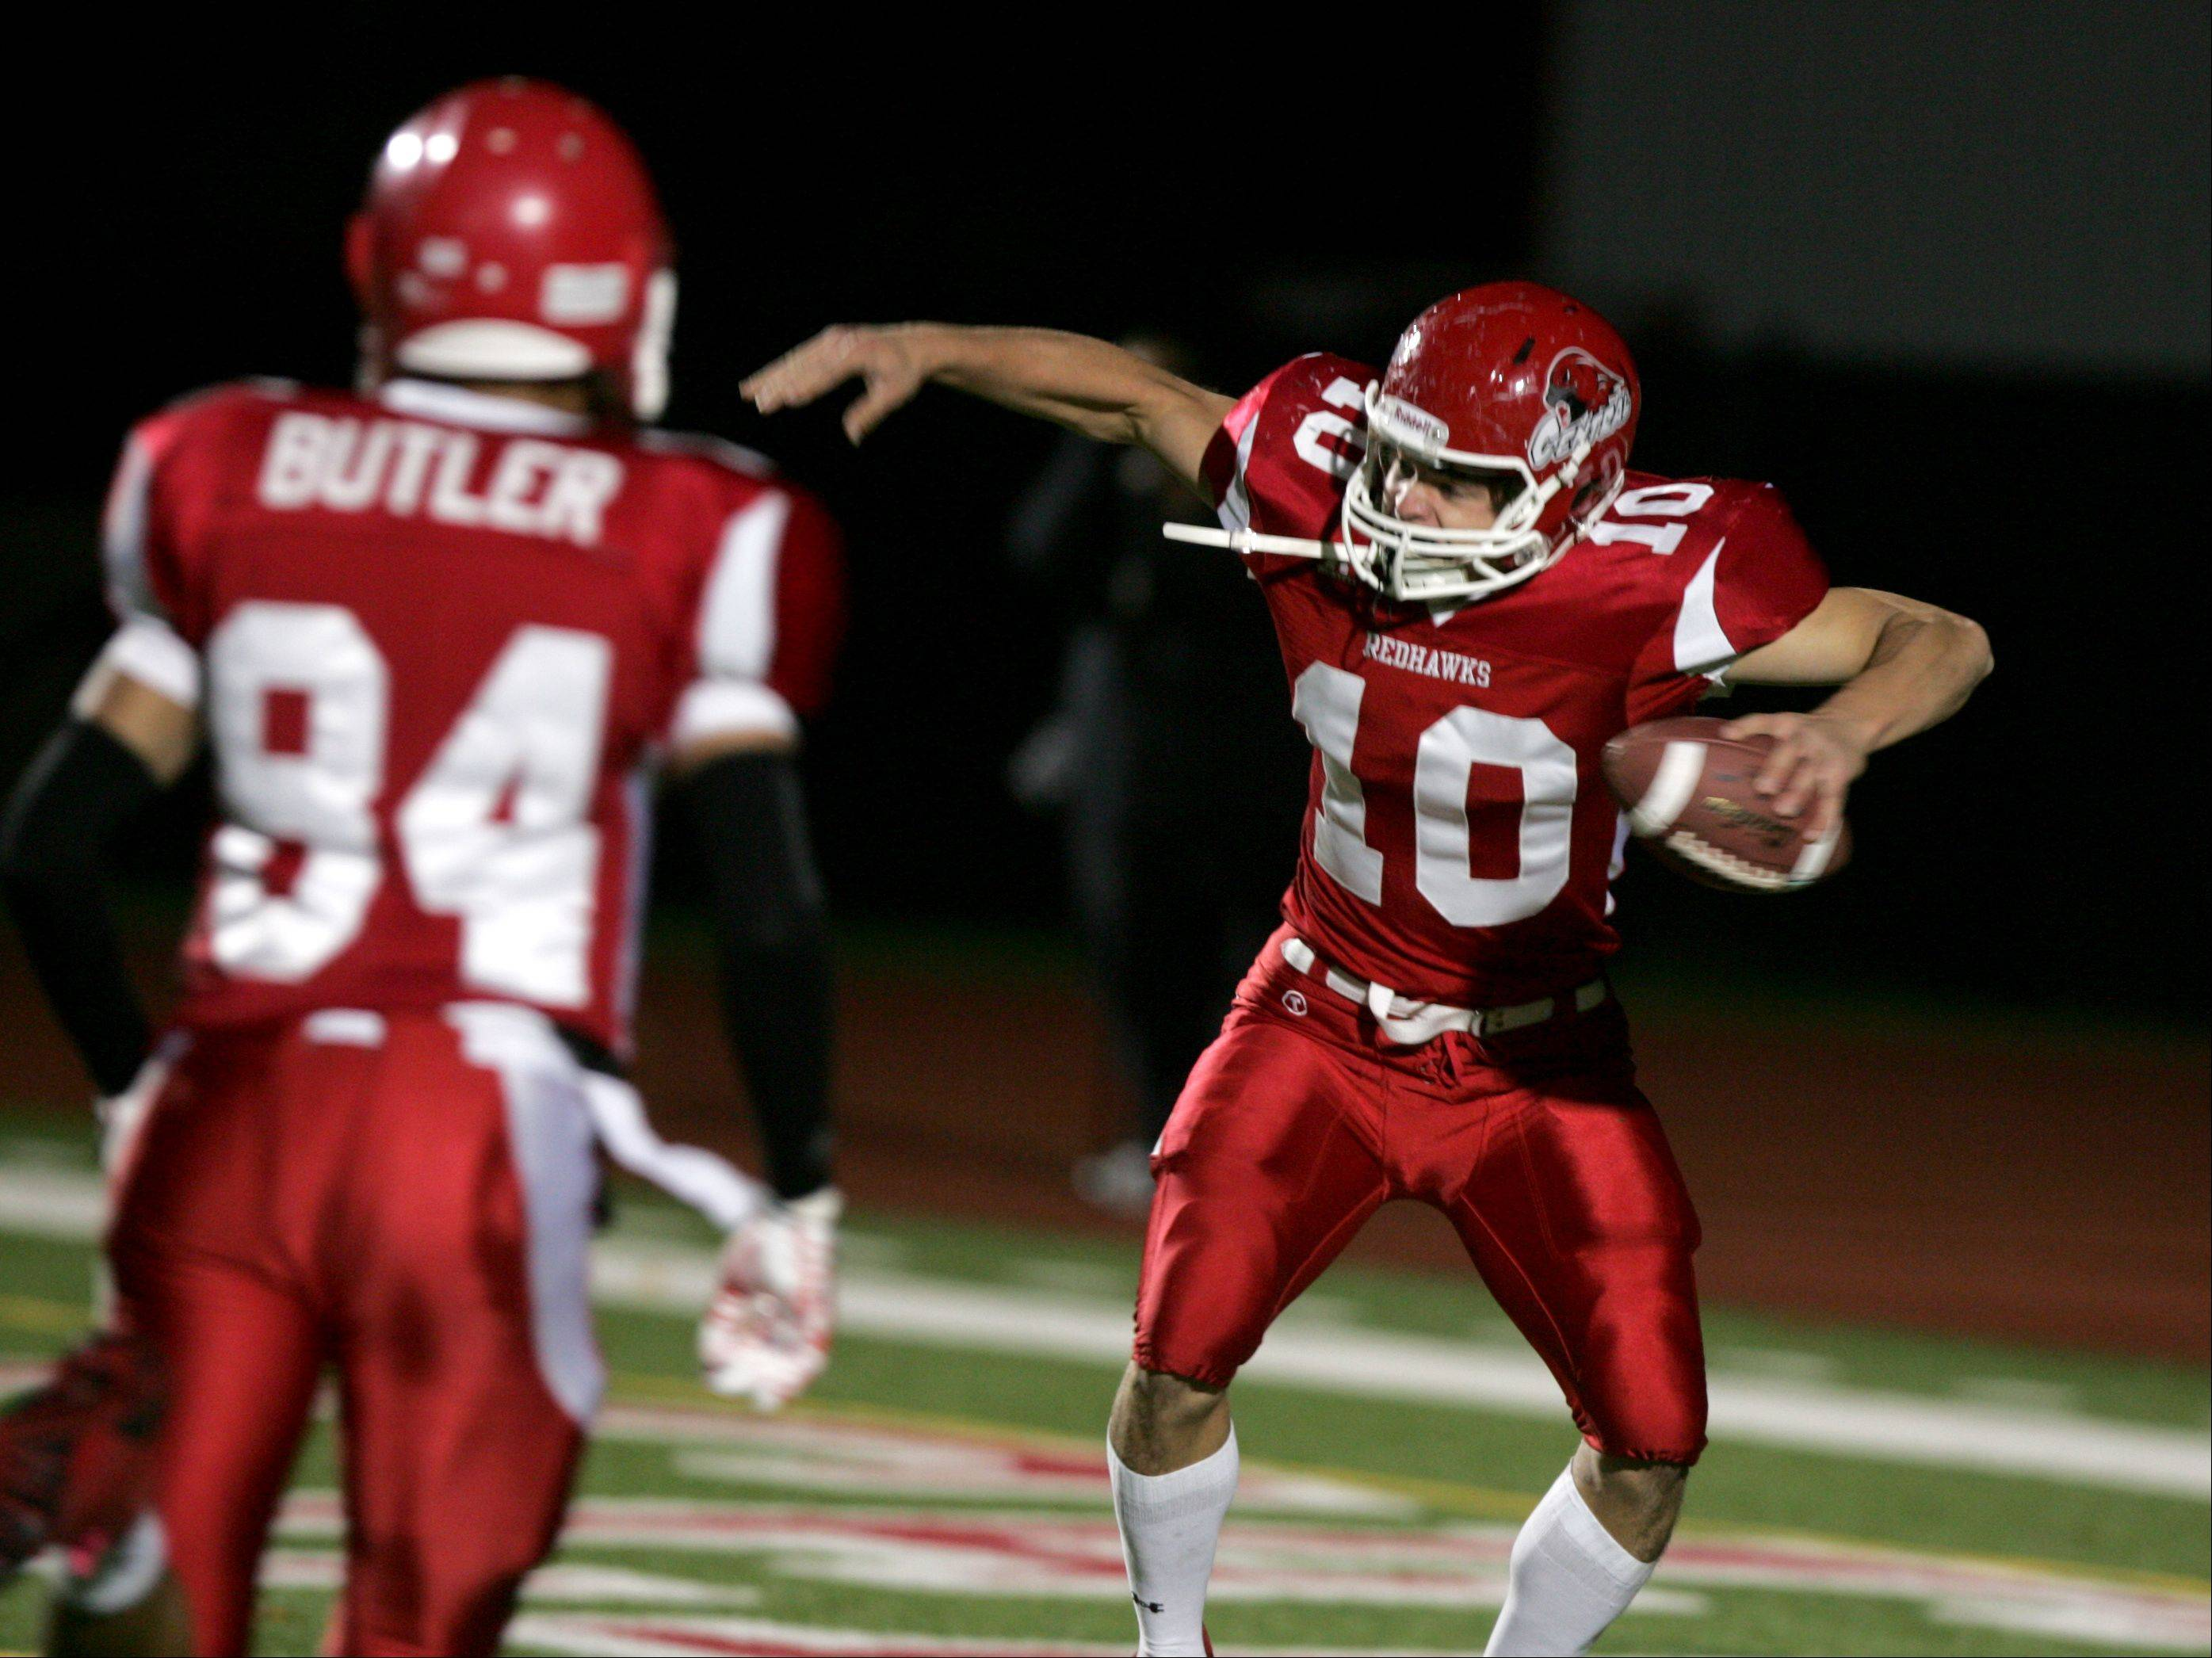 Naperville Central's John Dicianni, 10, celebrates his first-half touchdown against Belleville East during the second round of IHSA football playoffs in Naperville.